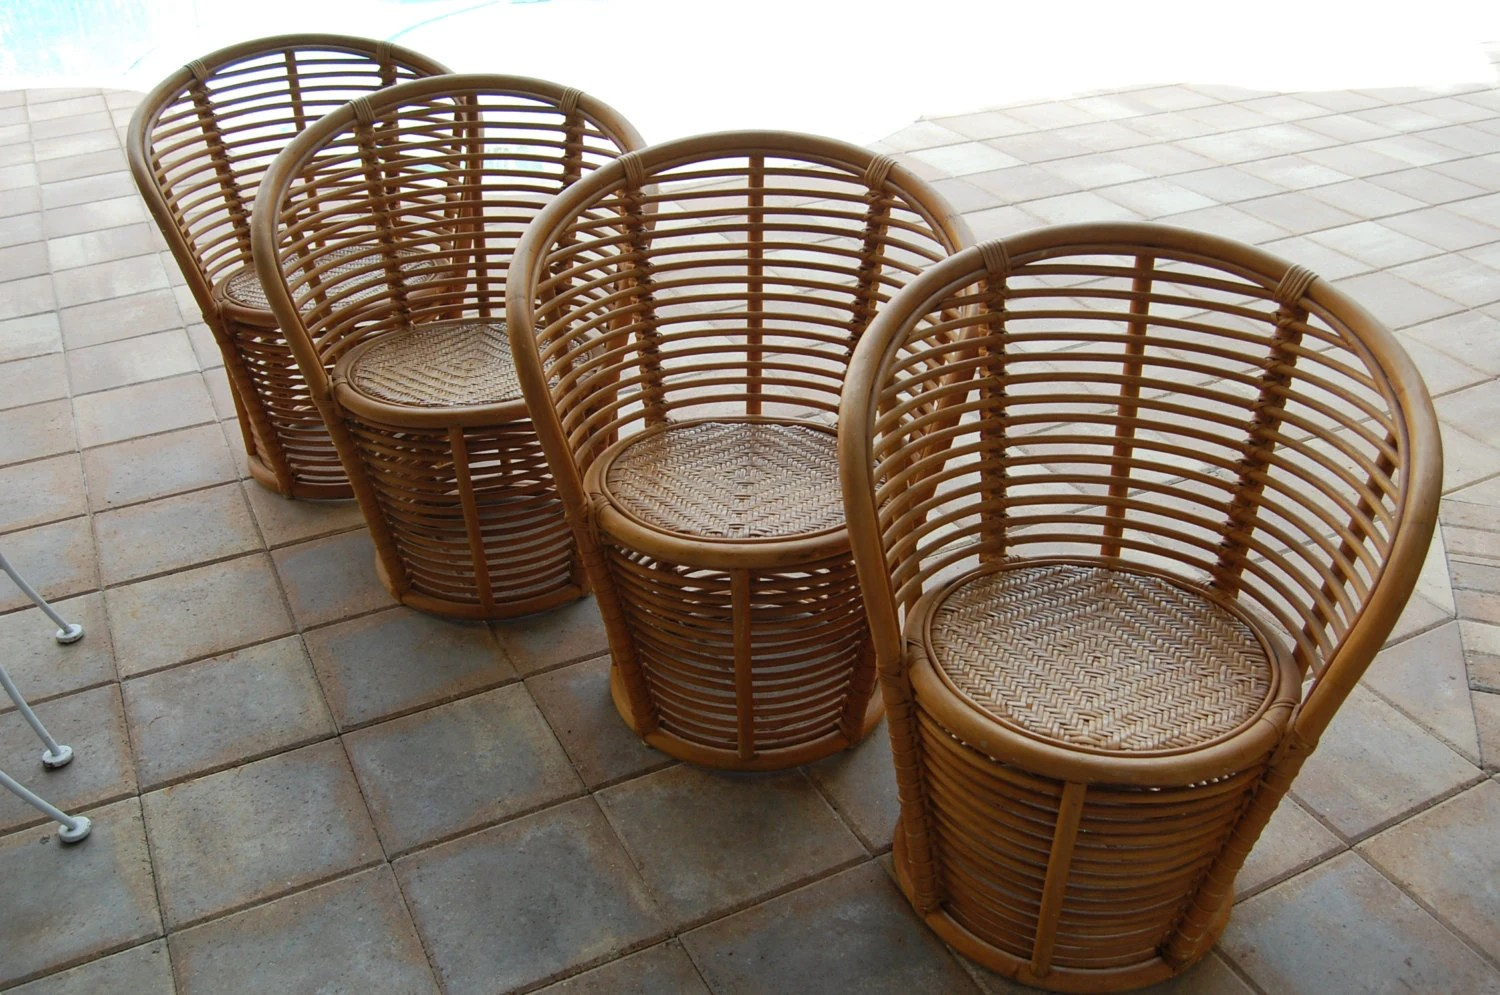 Vintage Rattan Chairs Vintage Bamboo Rattan Chairs On Sale Palm Beach Regency Style